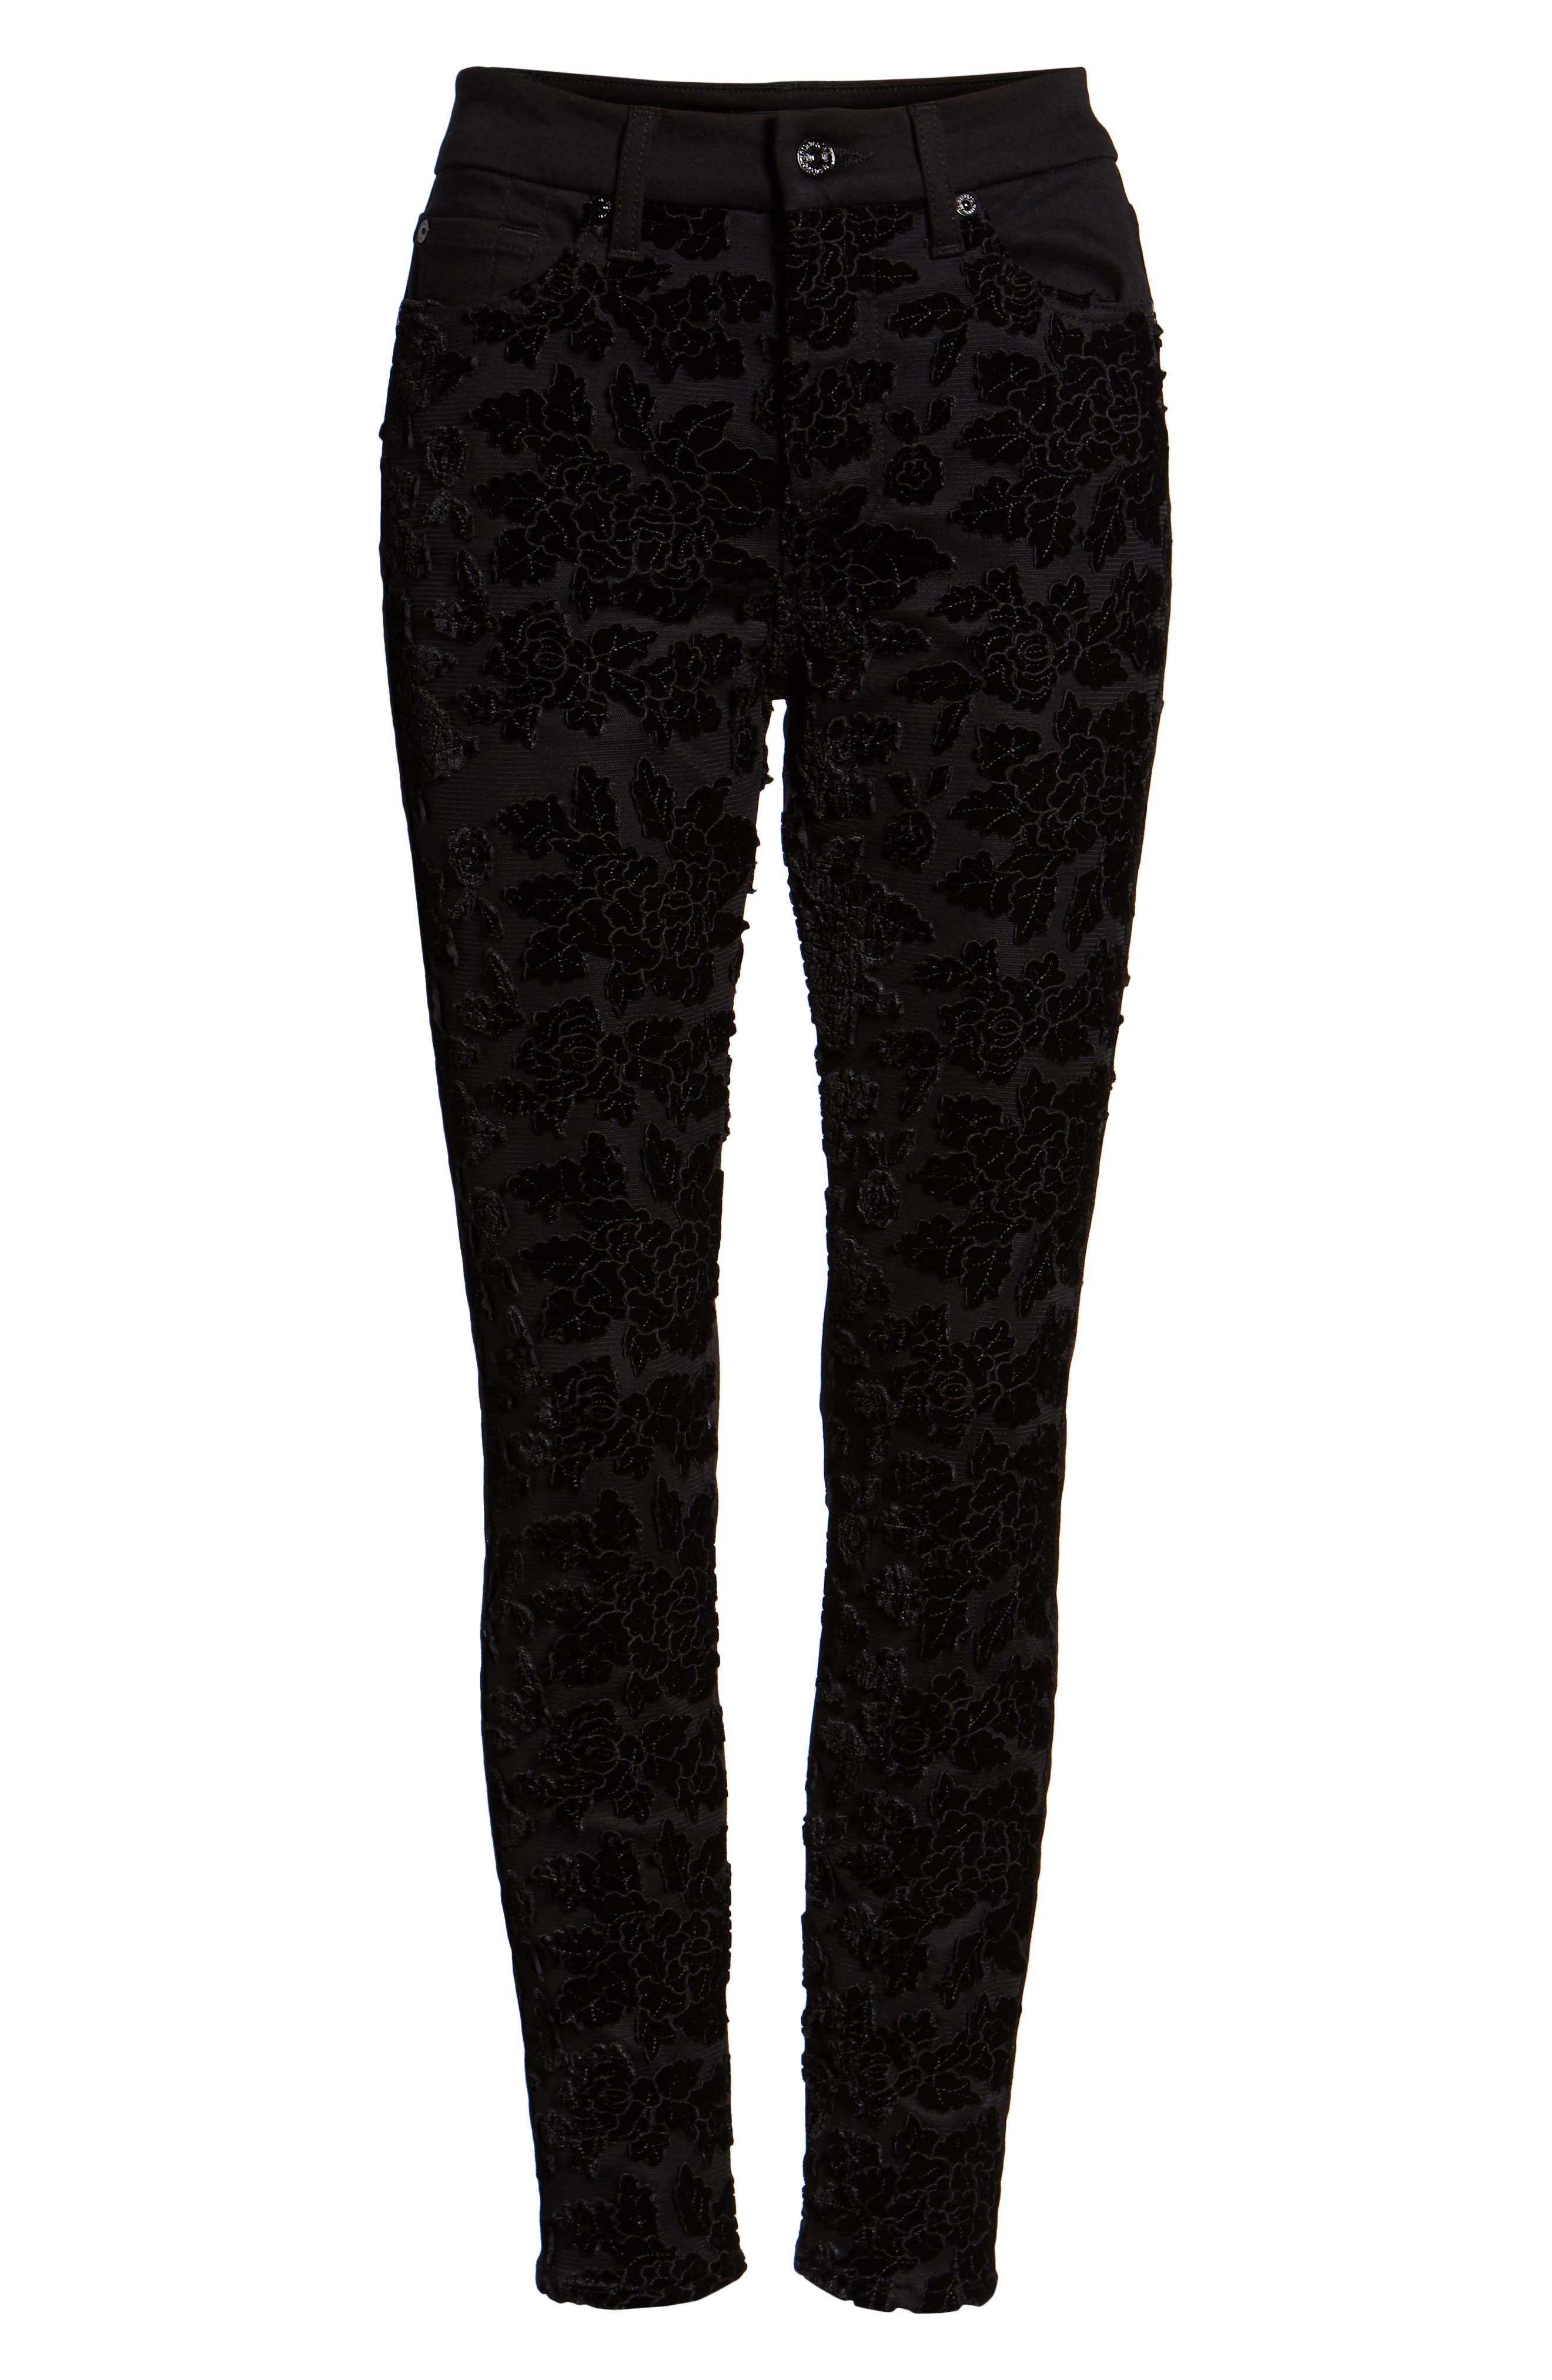 b(air) The Ankle Skinny Jeans,                             Alternate thumbnail 7, color,                             004